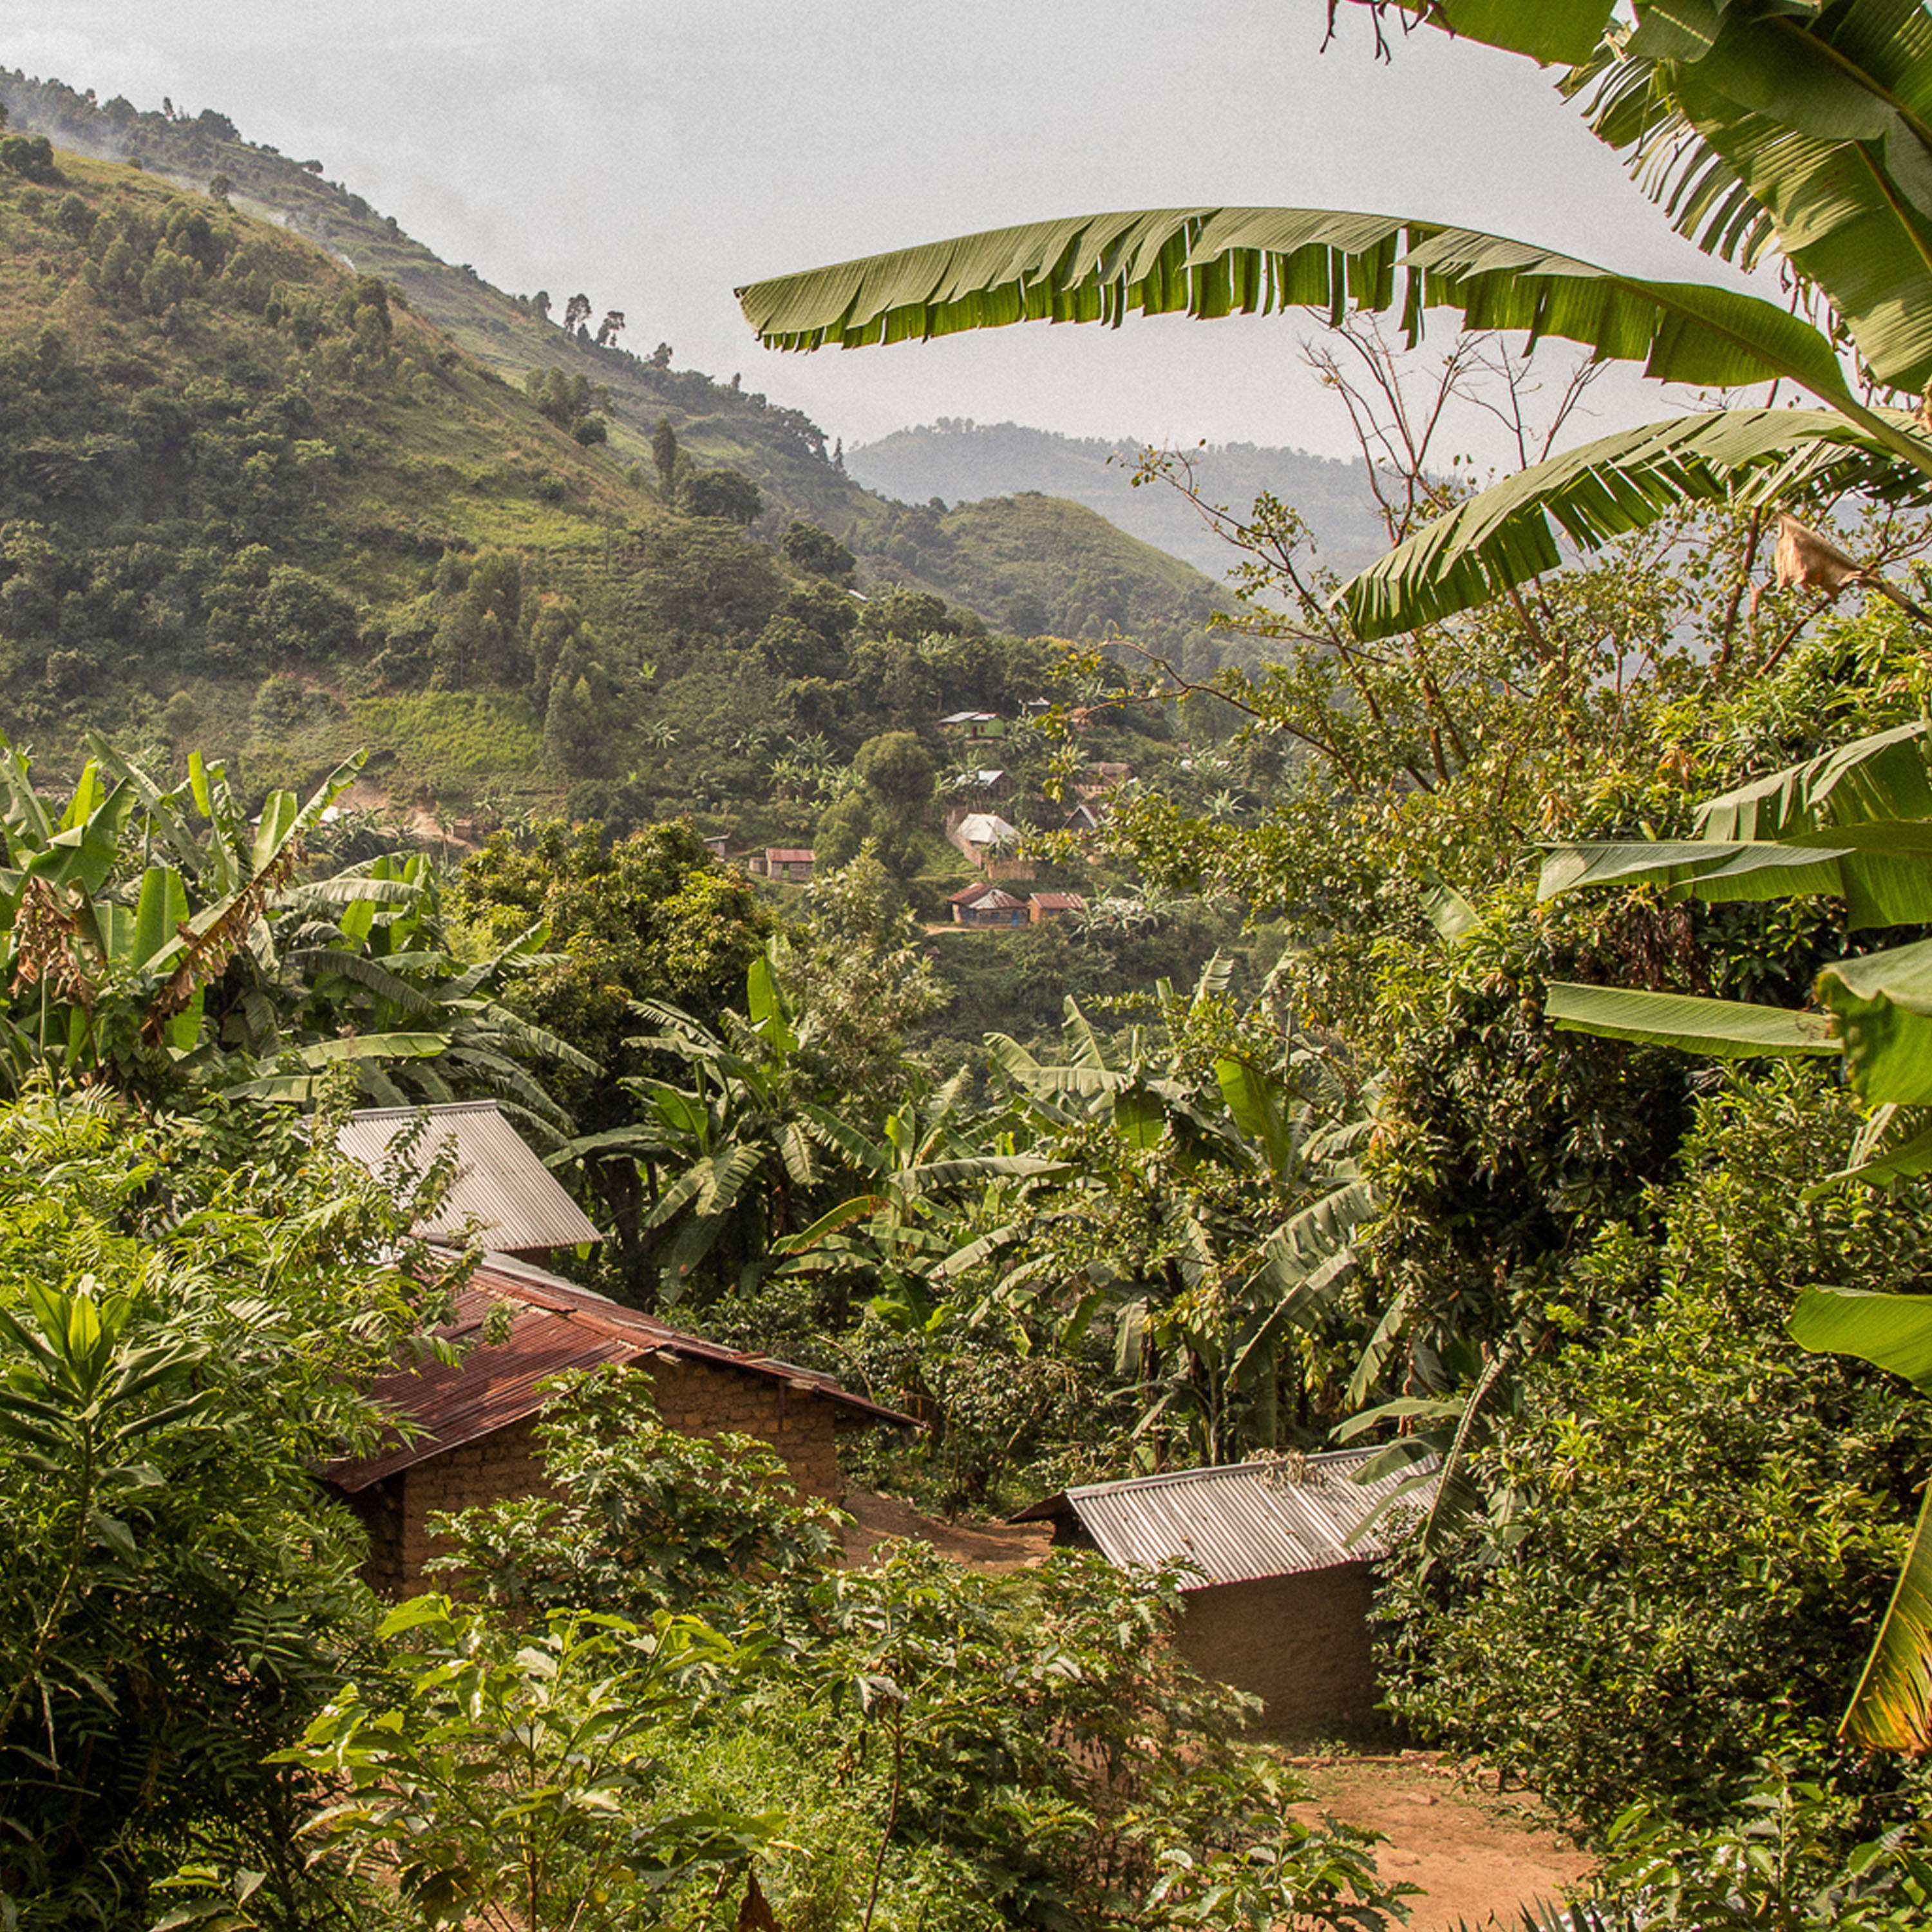 Congolese landscape  with river